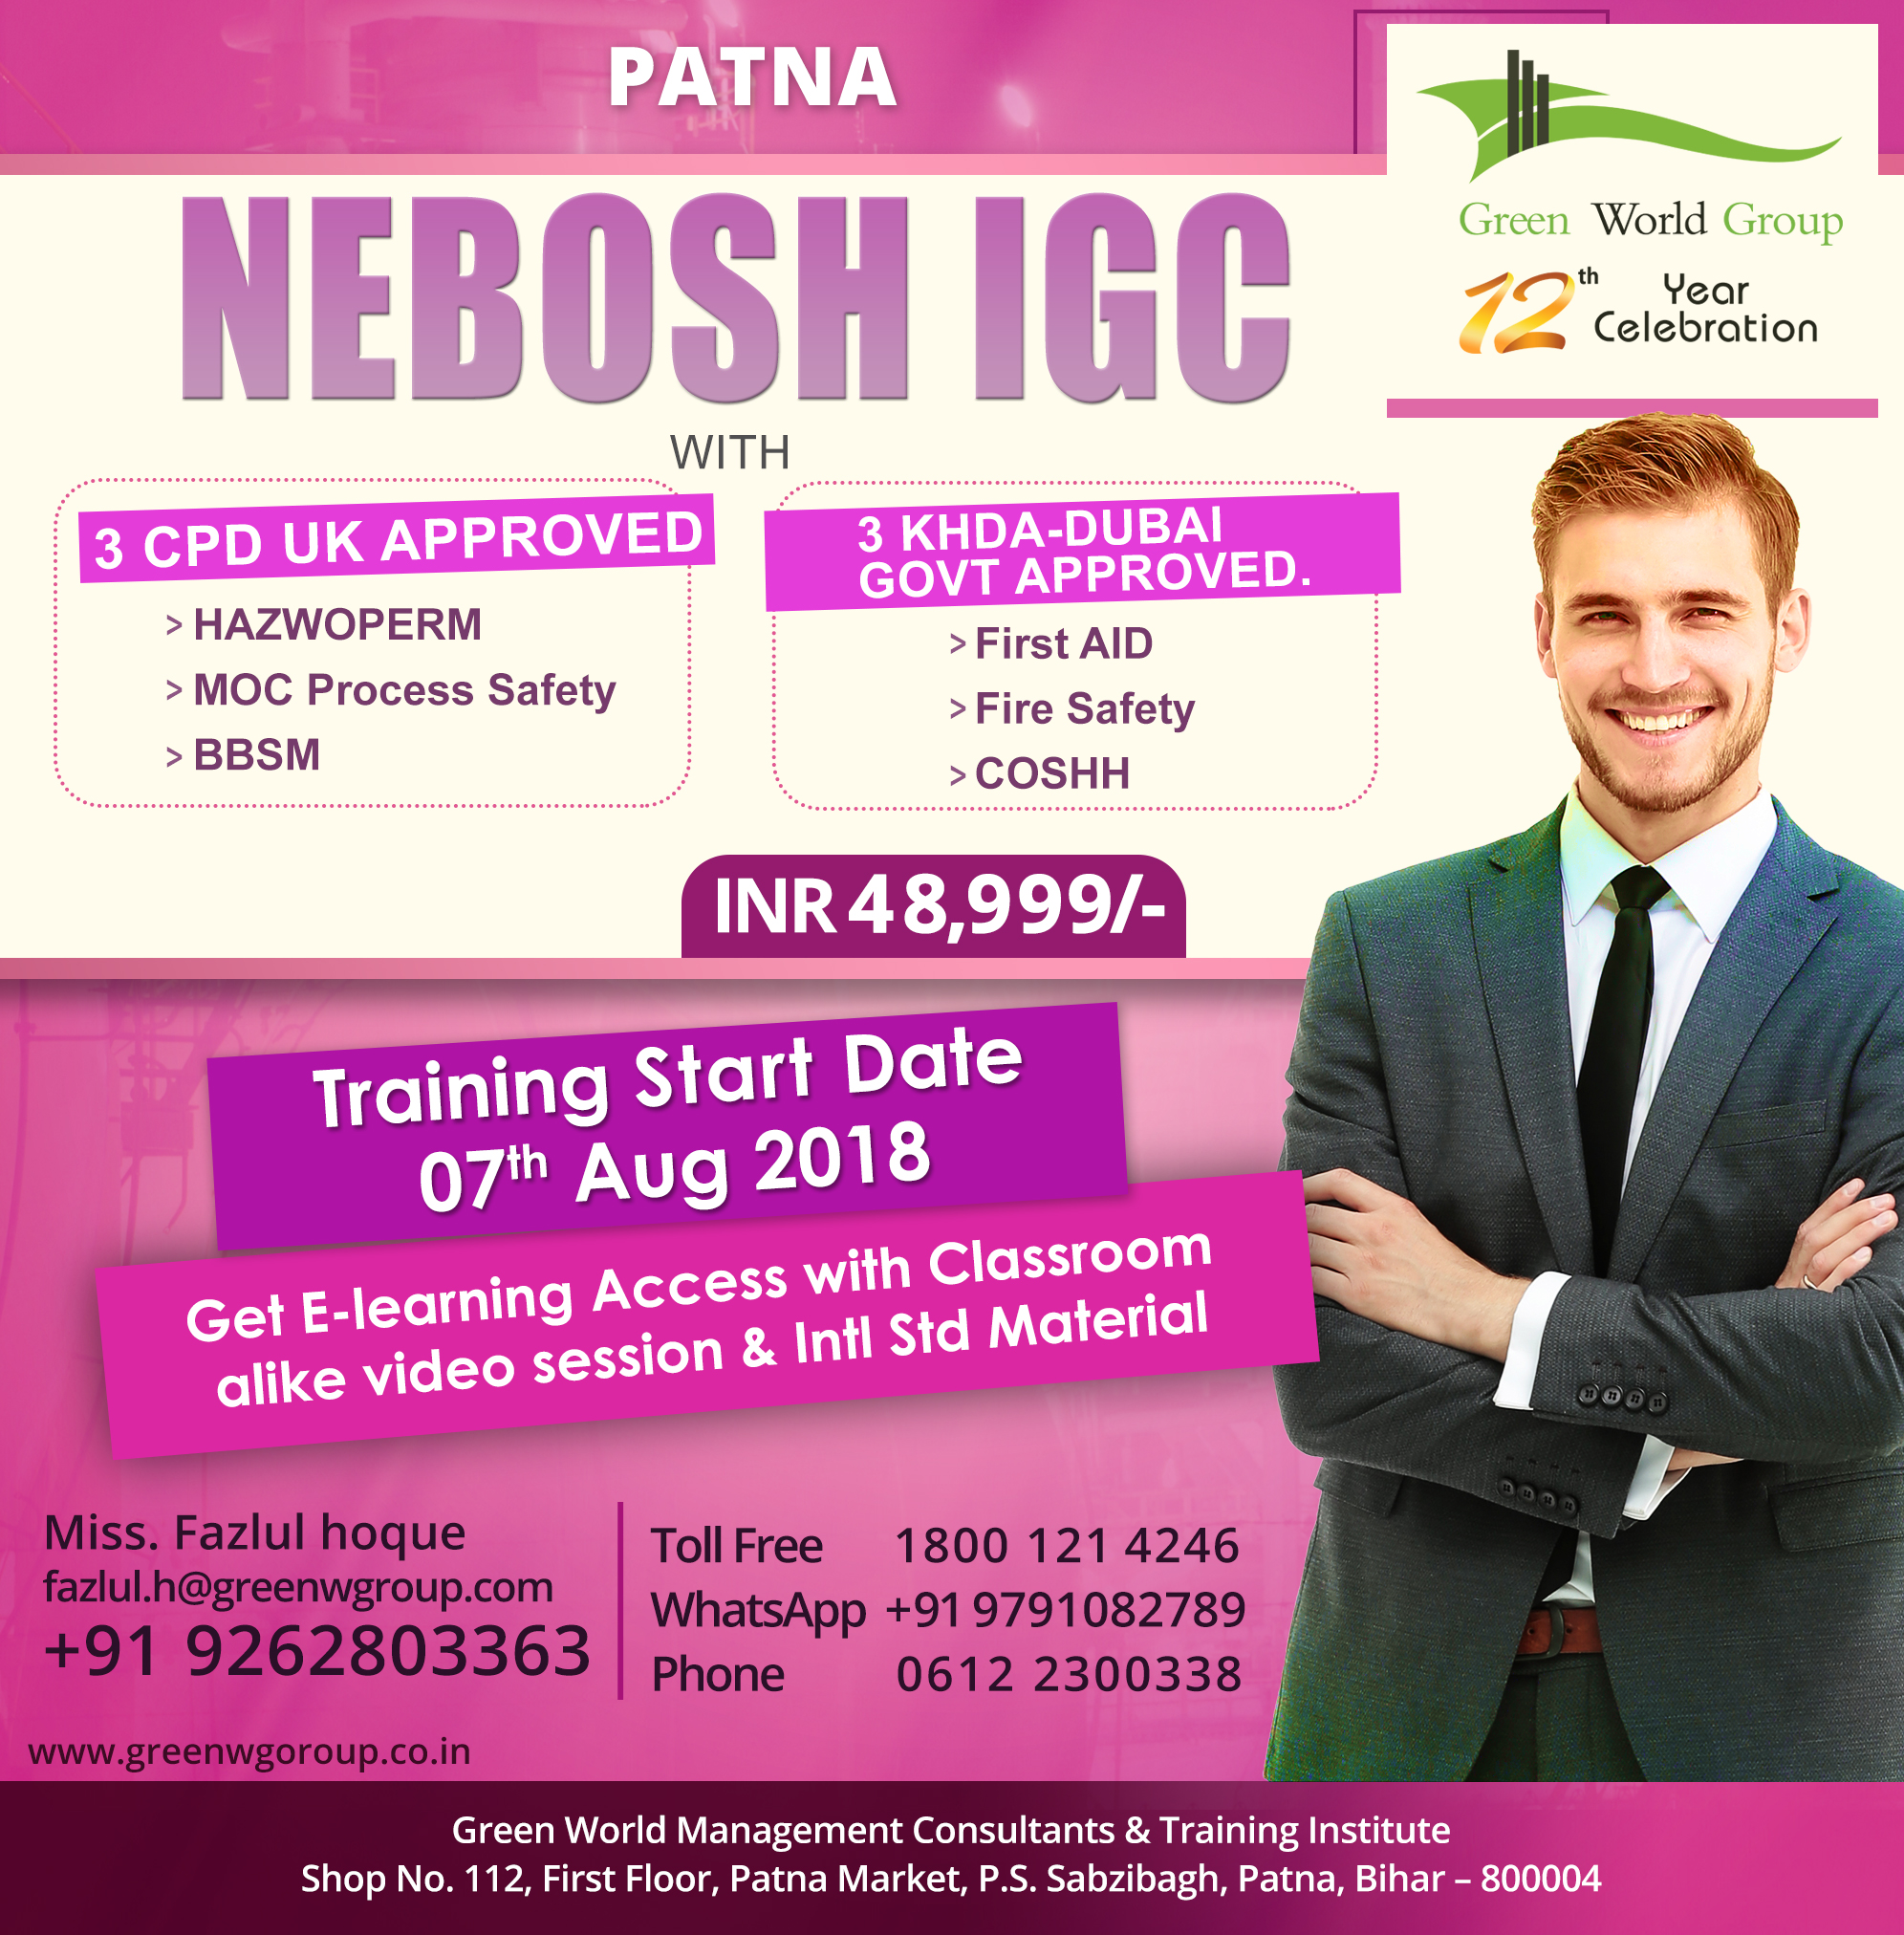 NEBOSH-IGC course in Patna